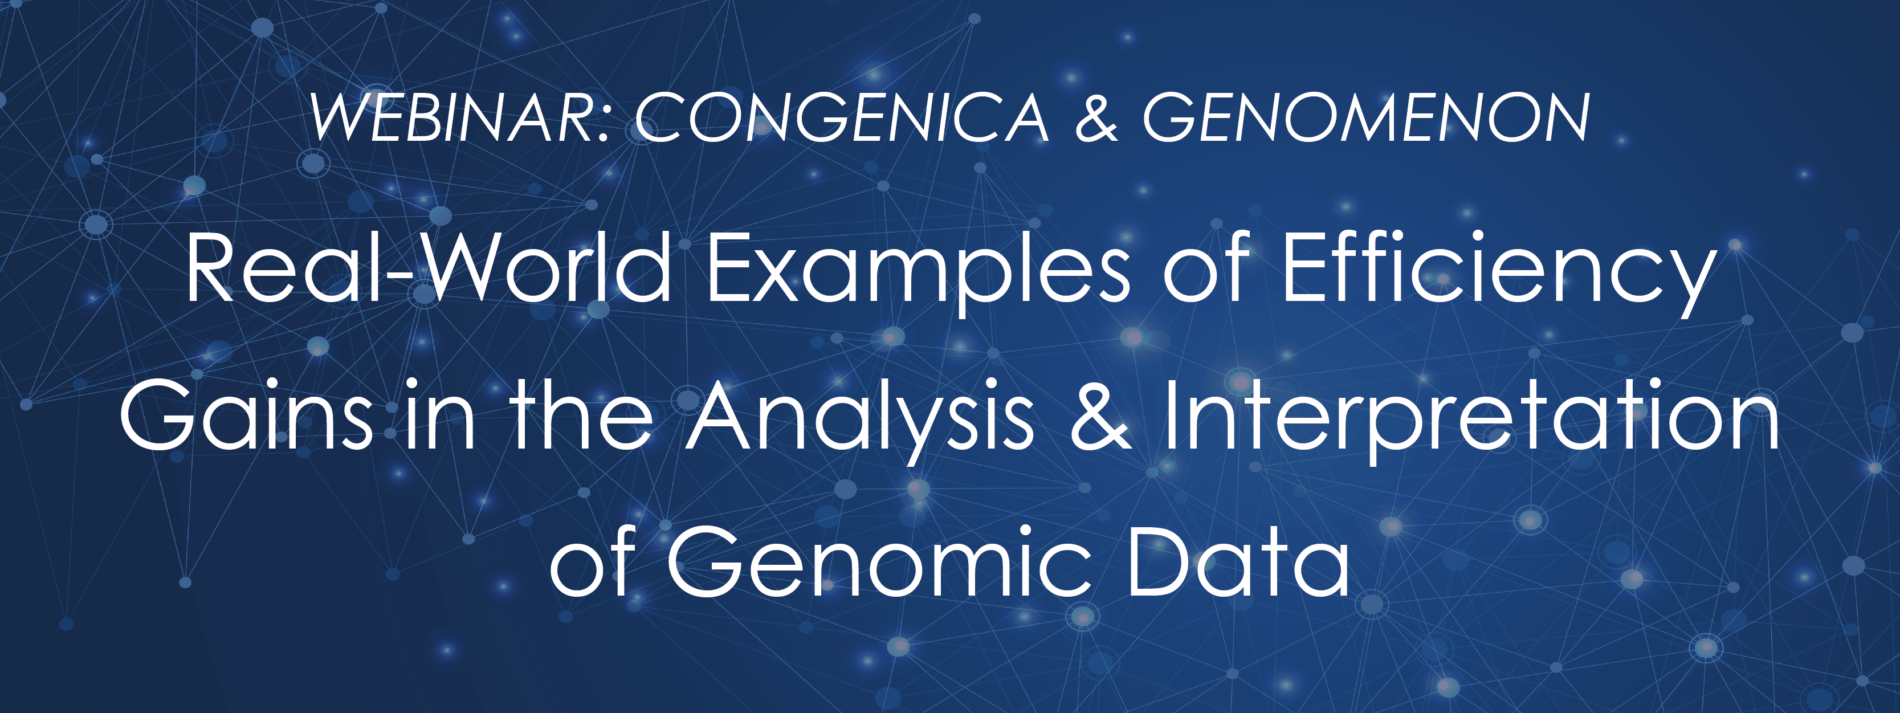 <h2><b>Upcoming Webinar:</h2> </b><Br> <h4><i>Webinar: Real-World Examples of Efficiency Gains in the Analysis & Interpretation of Genomic Data</h4></i>Thursday, November 14, 2019<br>11:00am EDT<br><br>